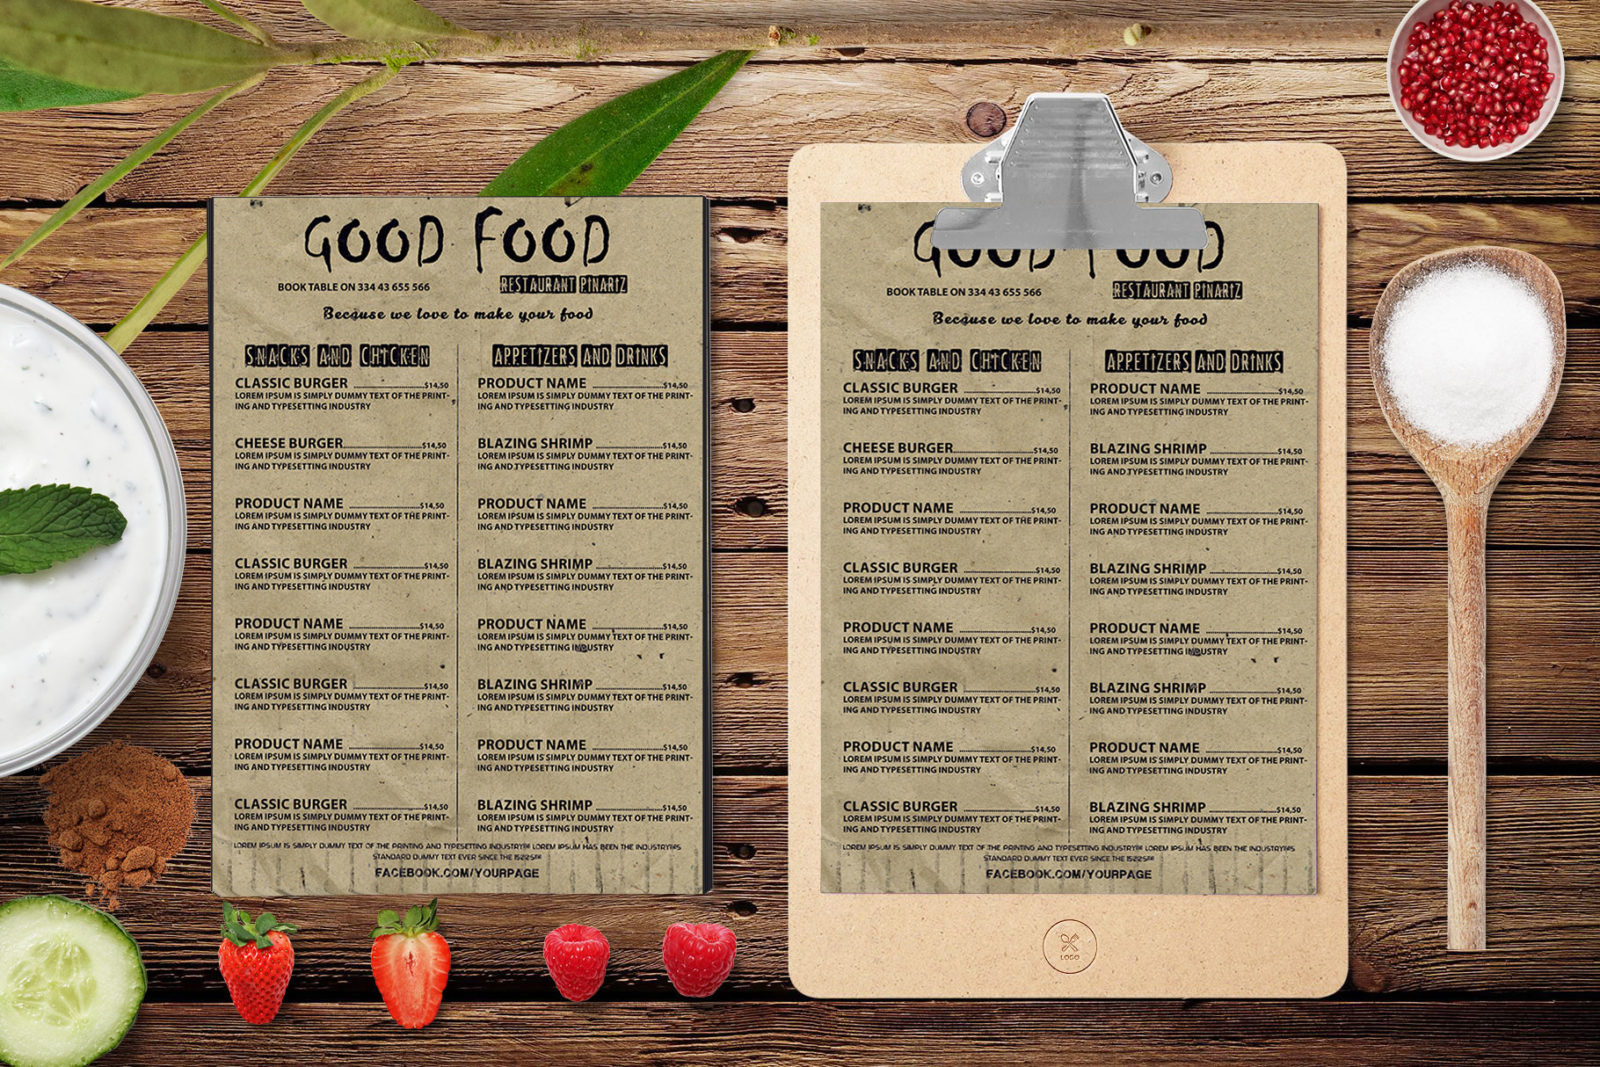 New Good Food A4 Size Menu PSD Template